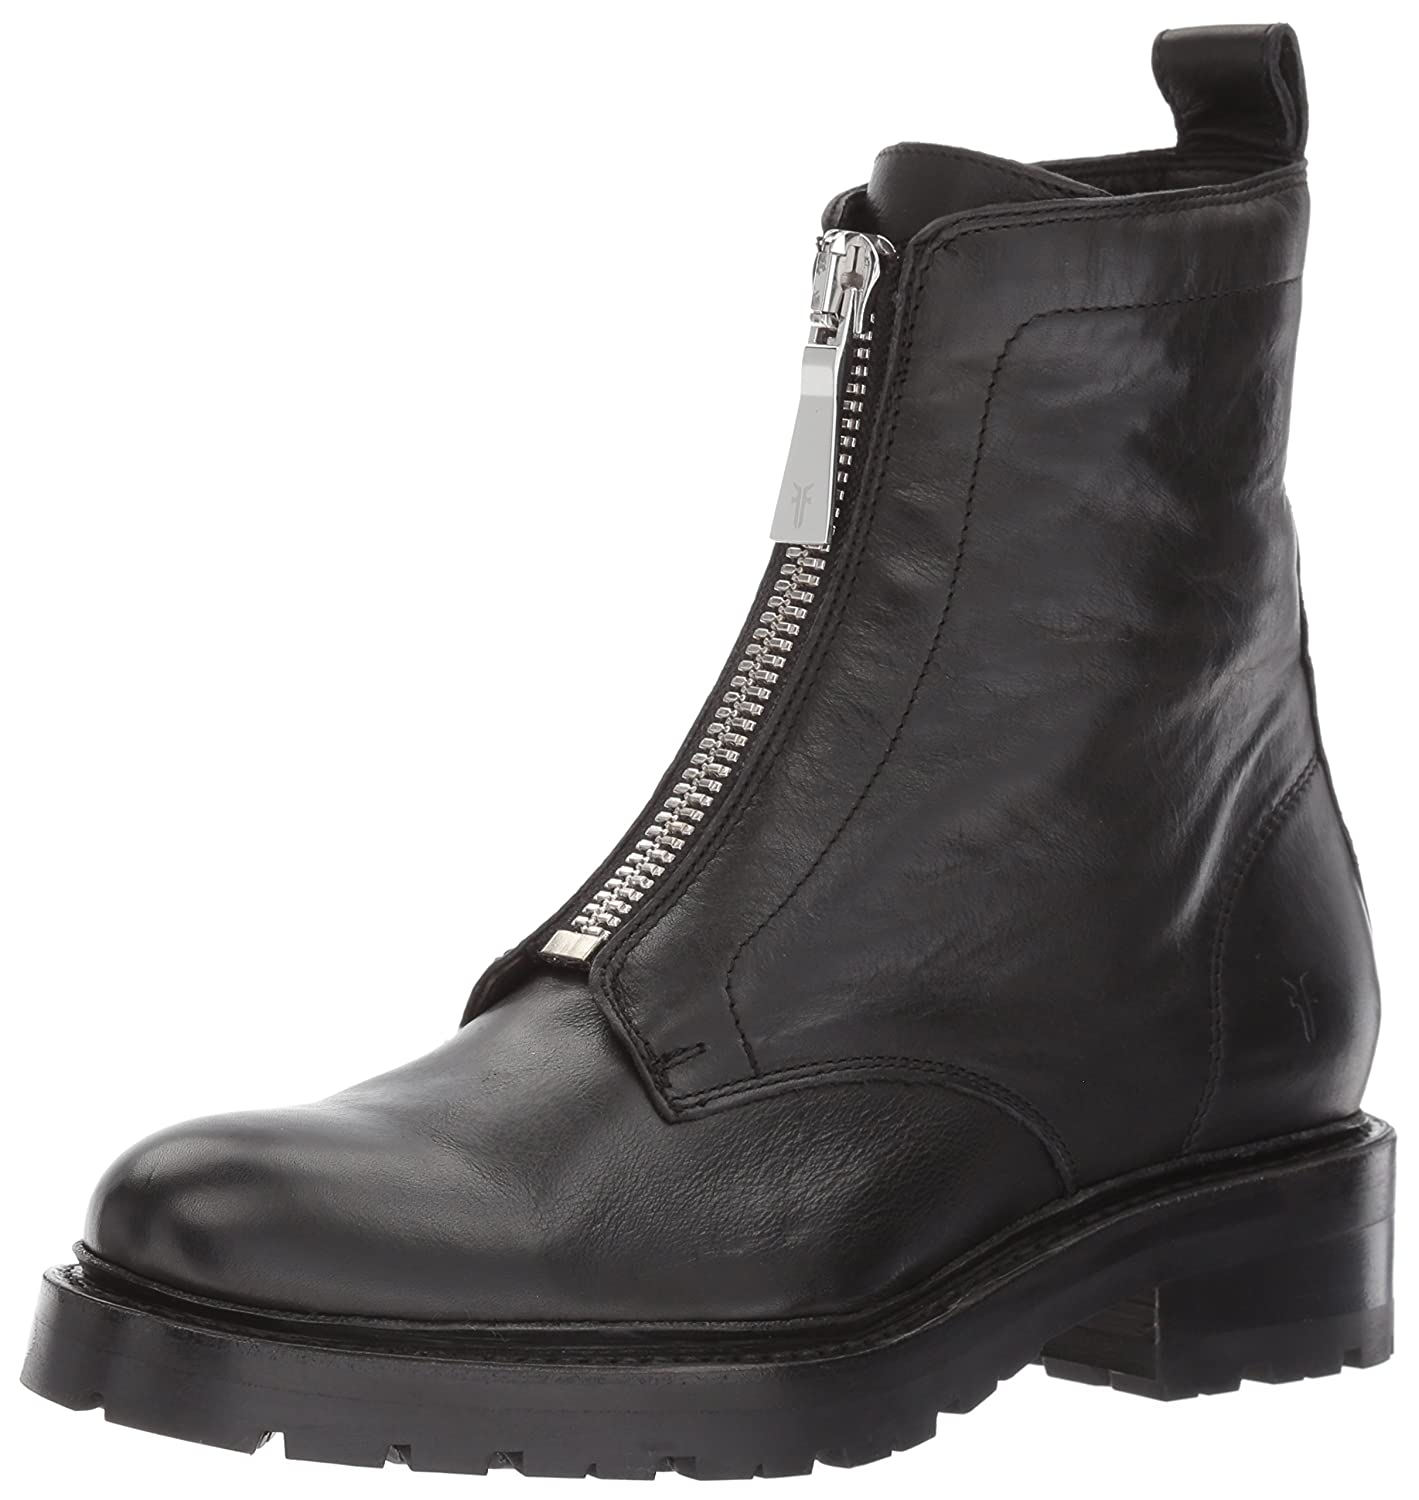 FRYE Women's Julie Front Zip Combat Boot B01MY0NRY2 10 B(M) US|Black Polished Soft Full Grain